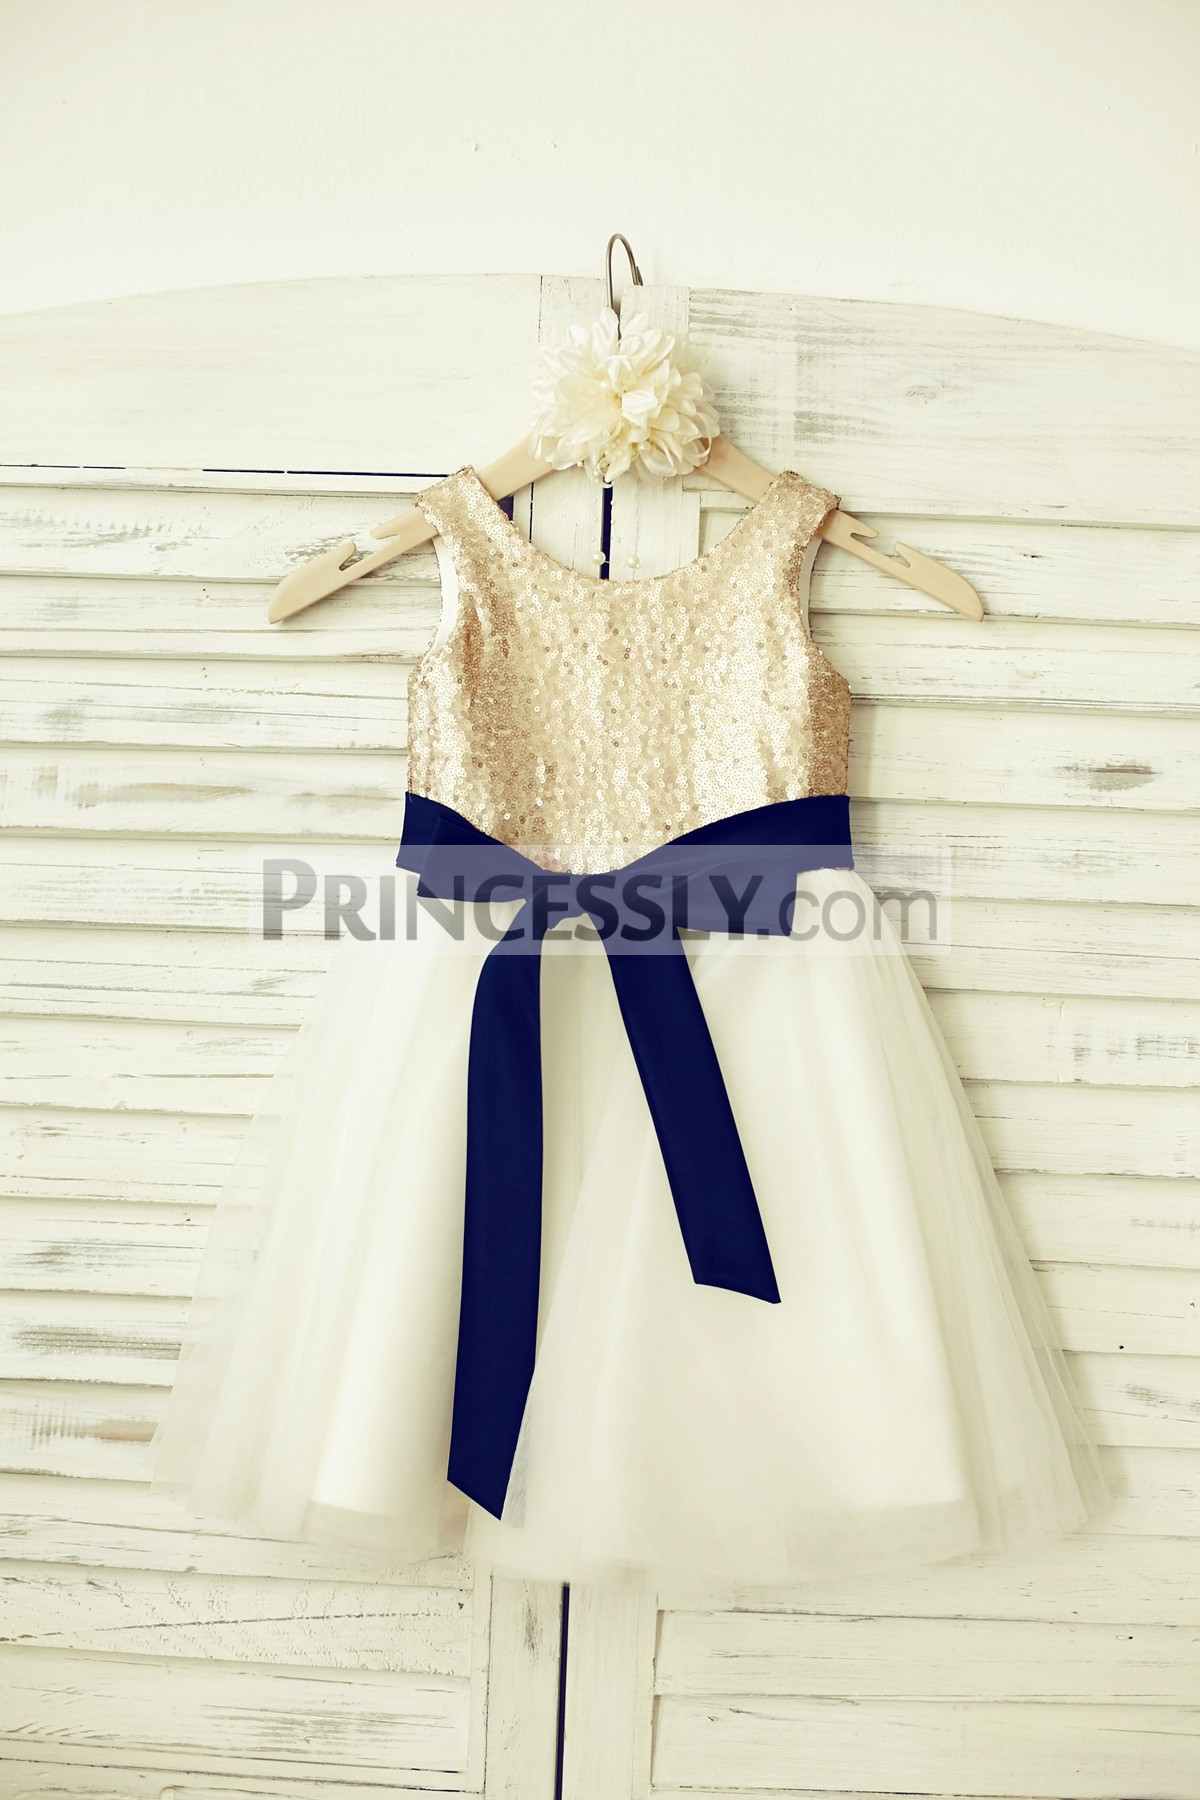 345940663d7 Champagne sequin ivory tulle wedding baby girl dress with navy blue sash